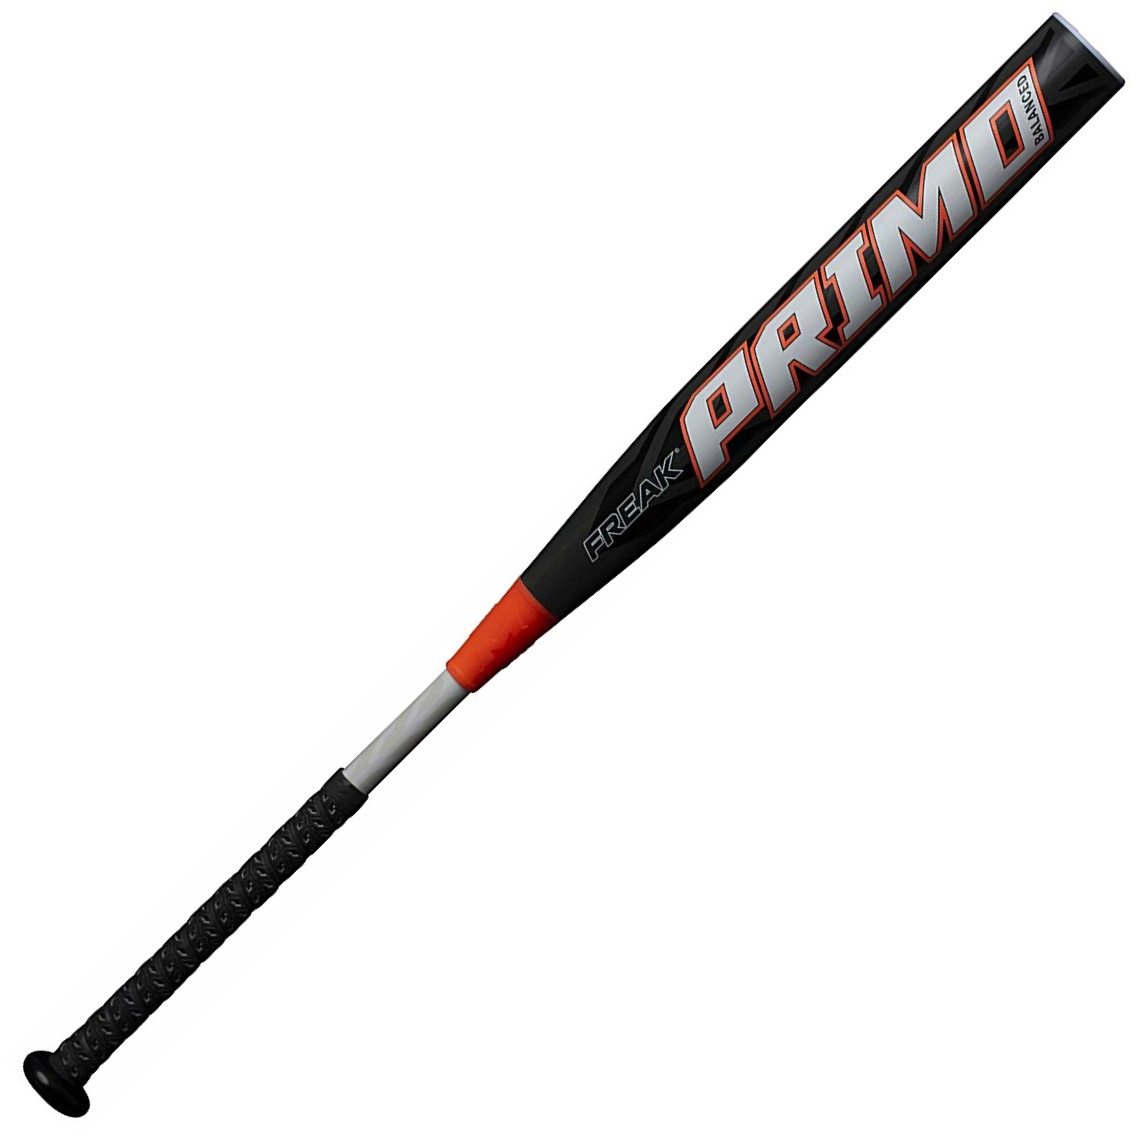 miken-freak-primo-balanced-asa-slowpitch-softball-bat-14-barrel-34-in-27-oz MPMOBA-3-27  658925043802 Mikens breakthrough tetra-core tech optimizes performance by utilizing an inner core